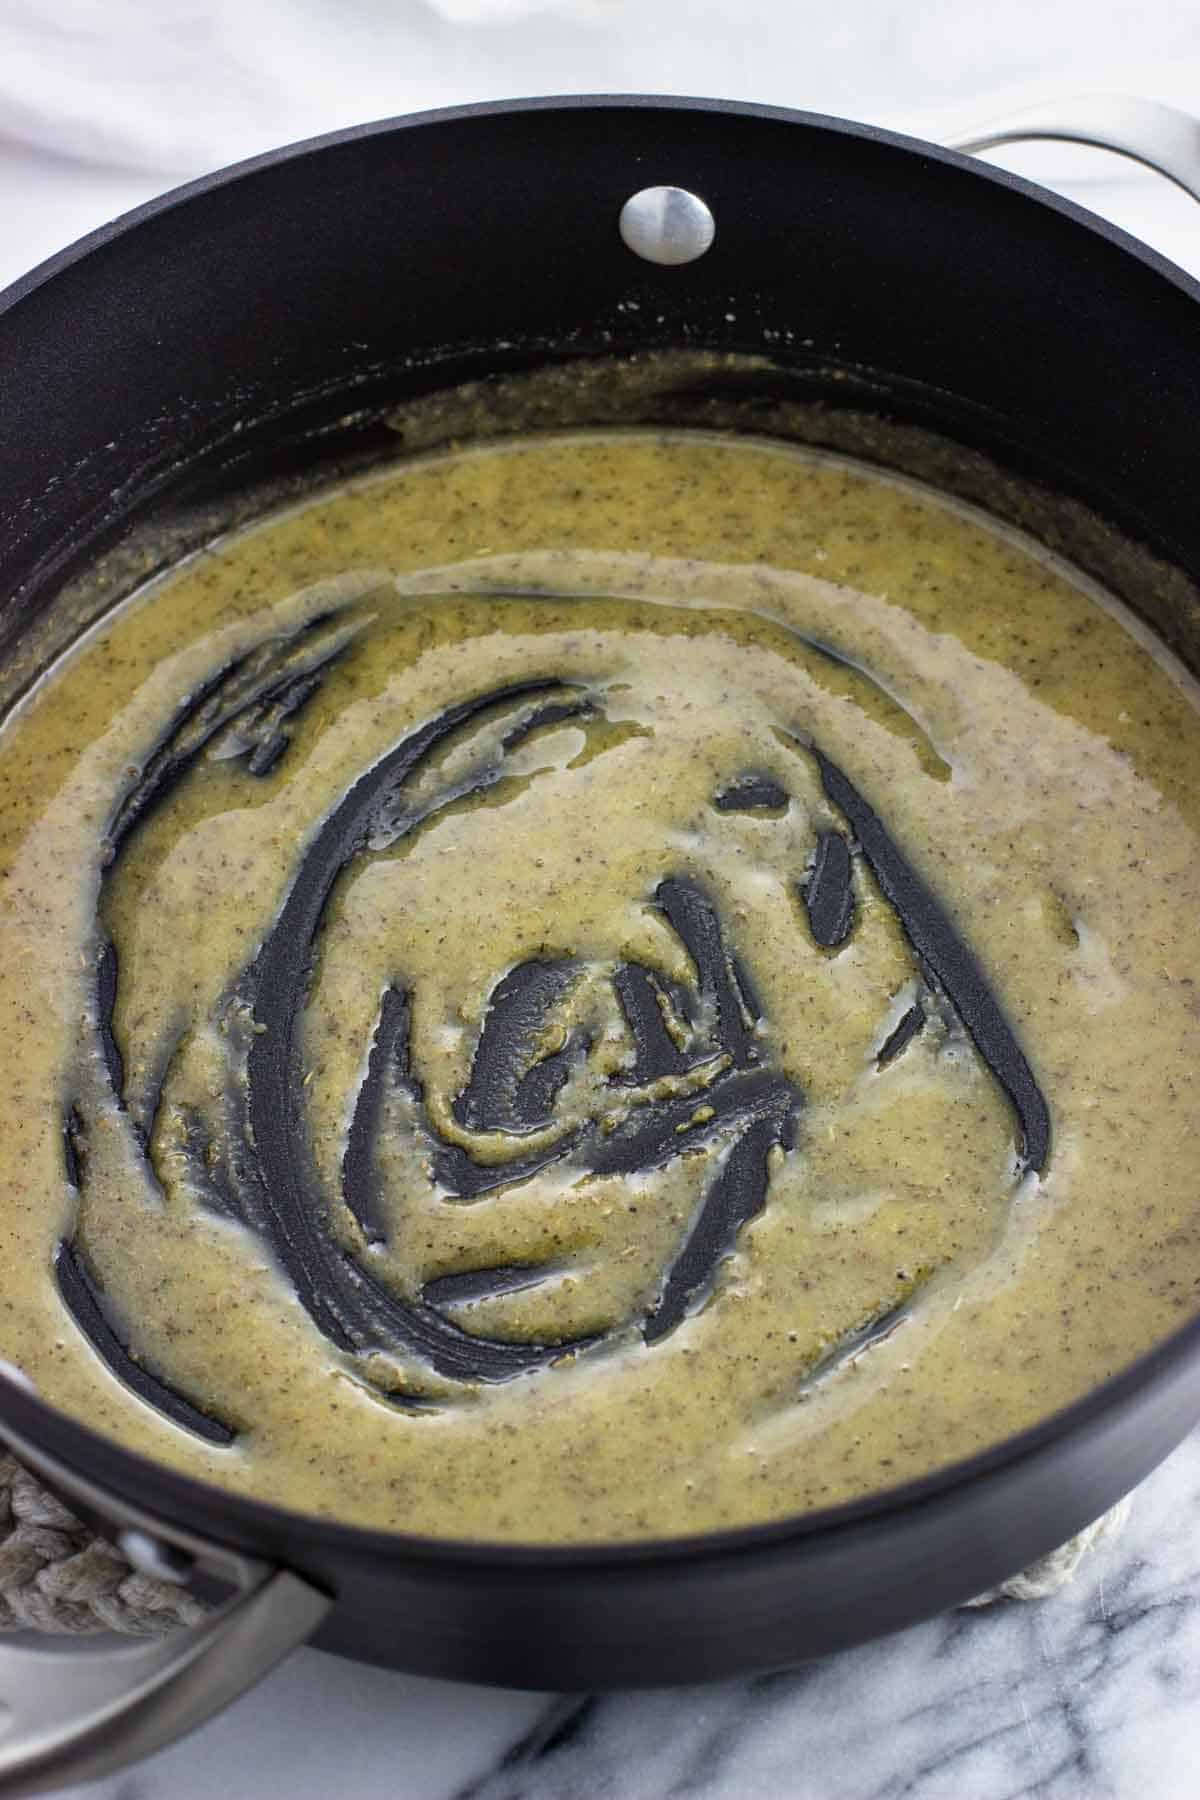 Dried seasonings whisked into the butter and flour in a pan.